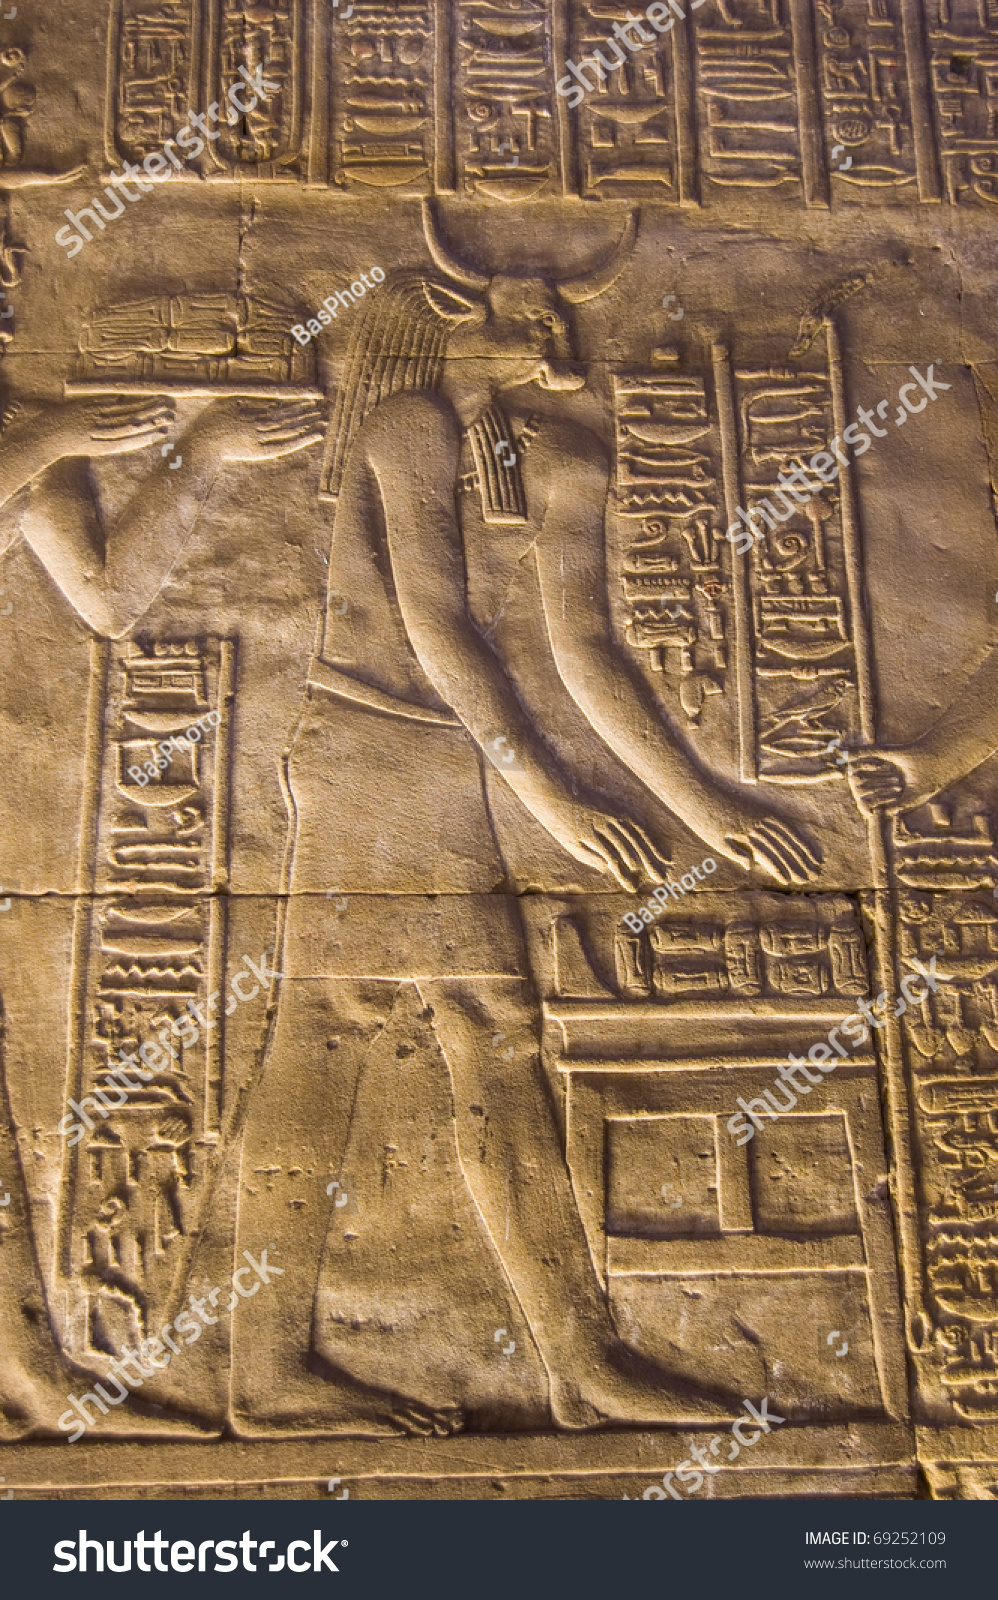 Ancient egyptian stone carved frieze showing stock photo